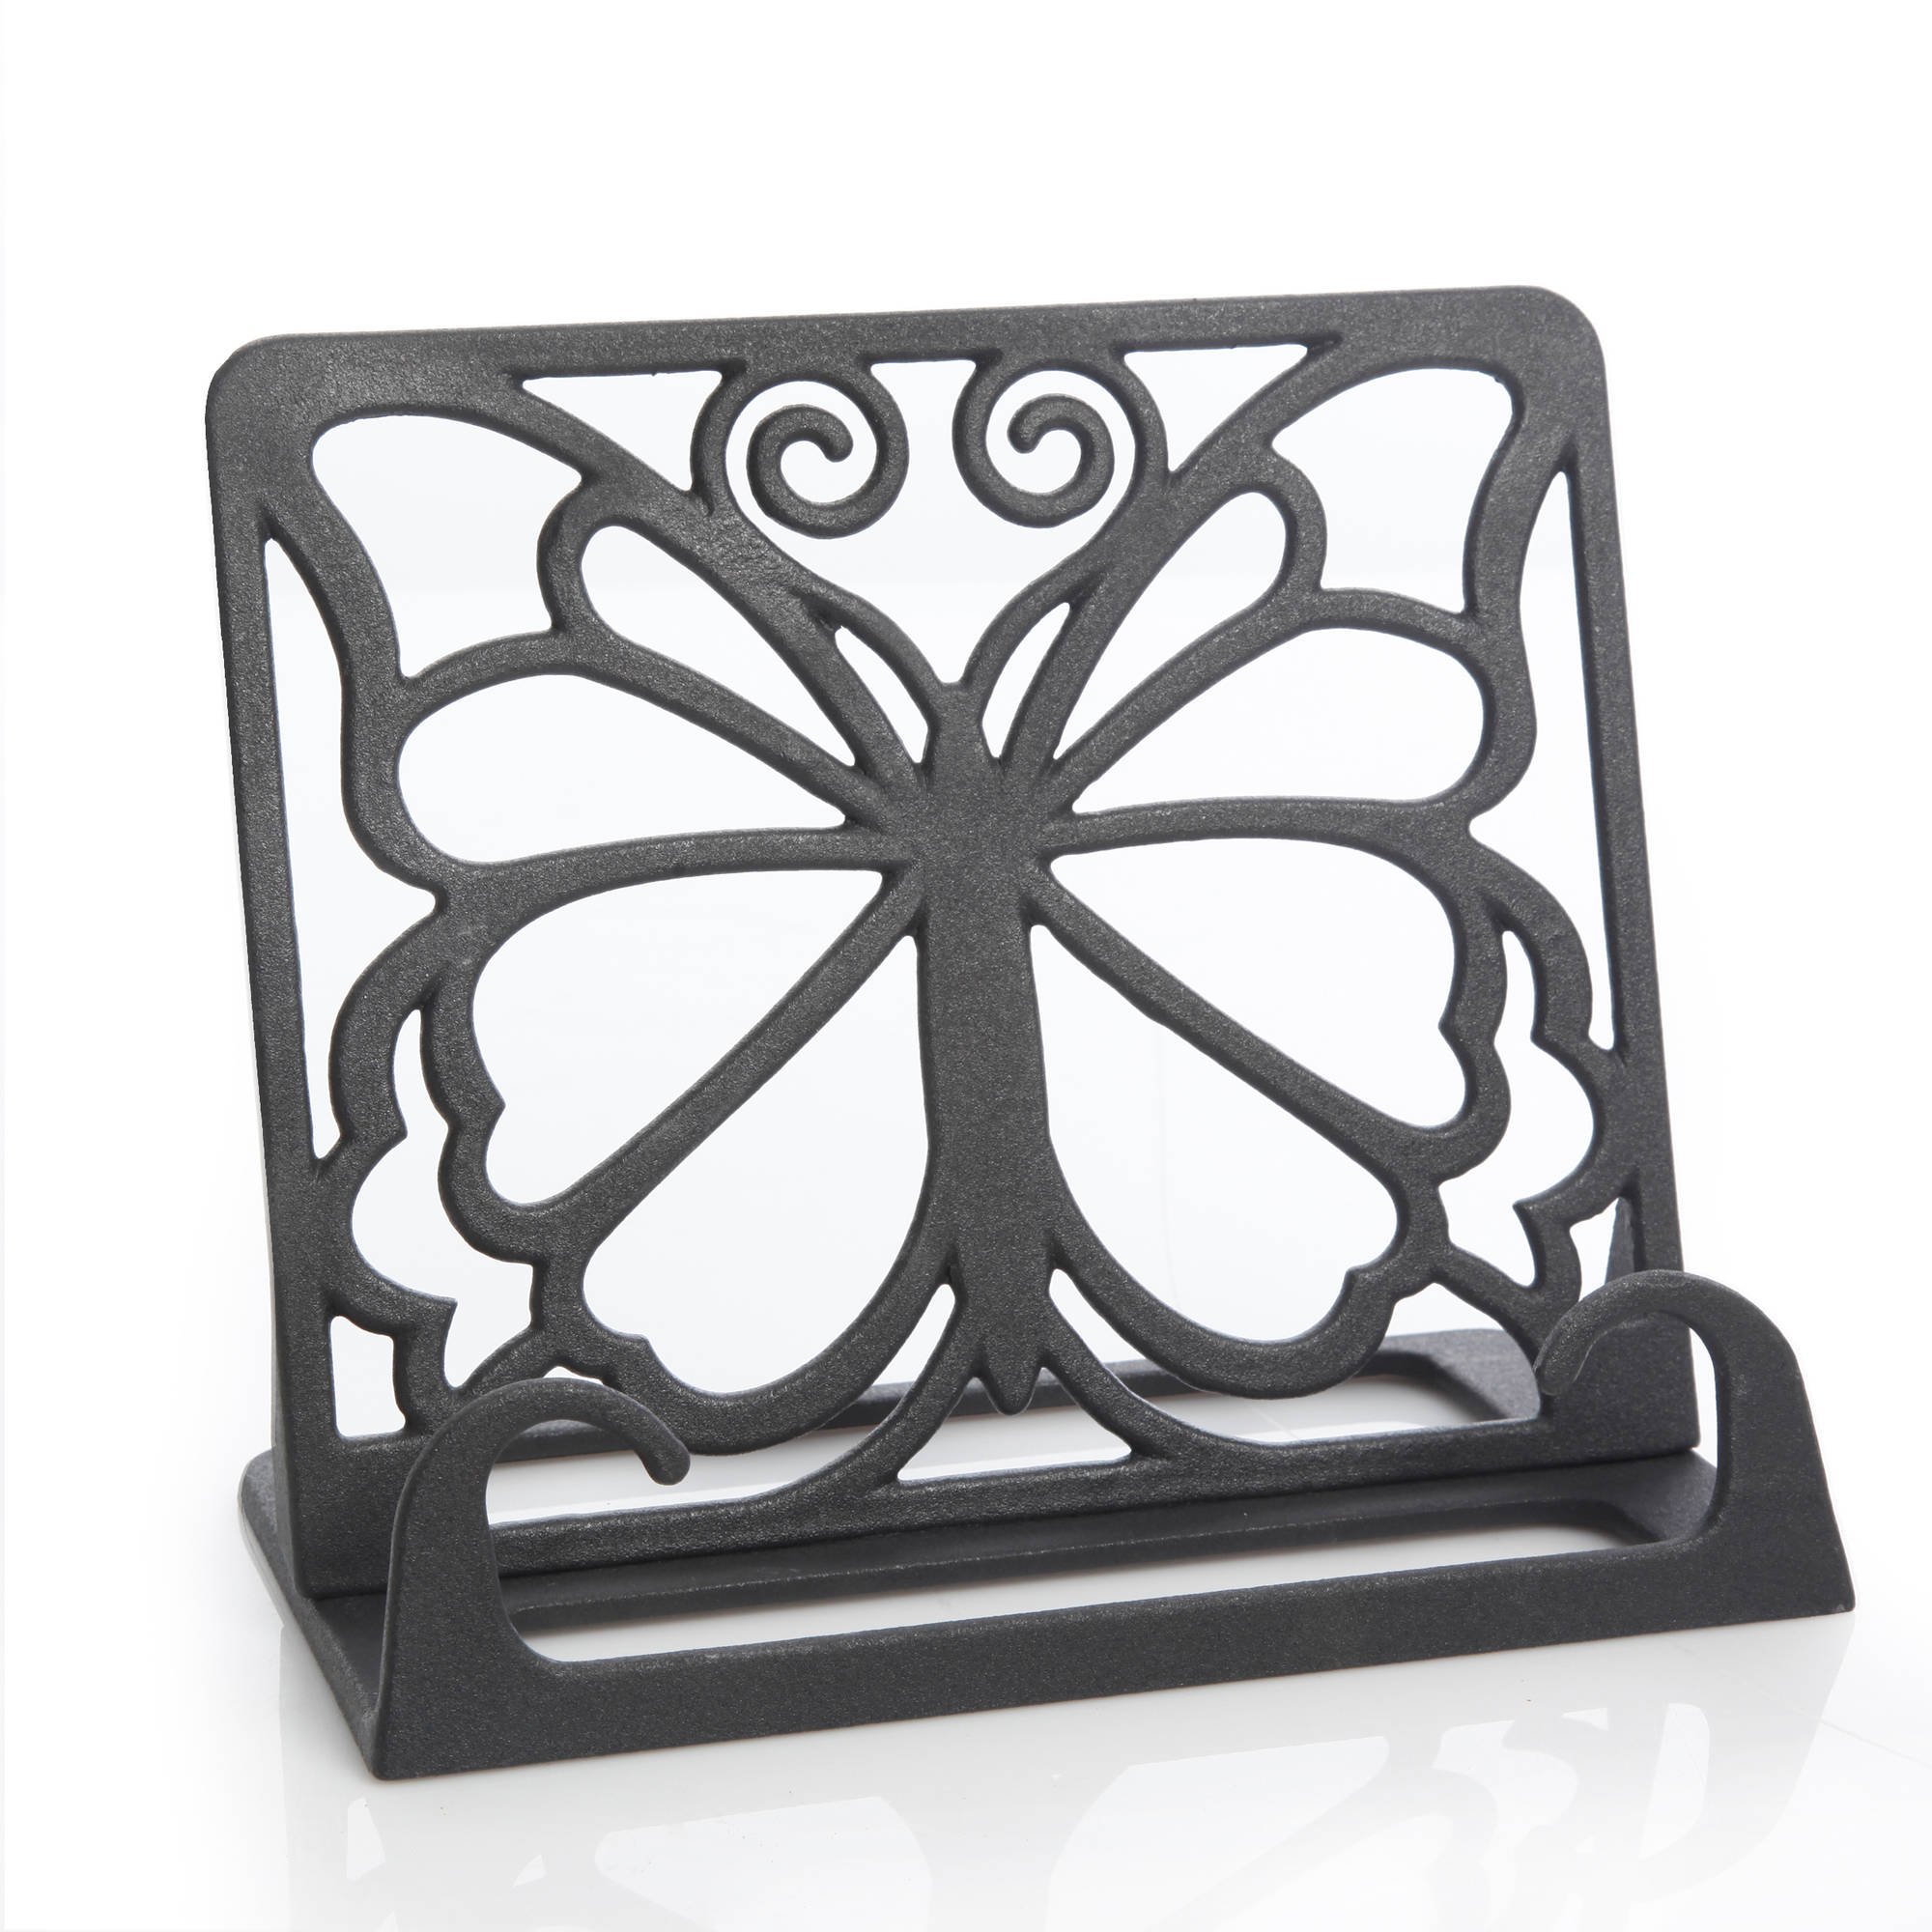 The Pioneer Woman Timeless Beauty Cast Iron Cookbook Holder, Black